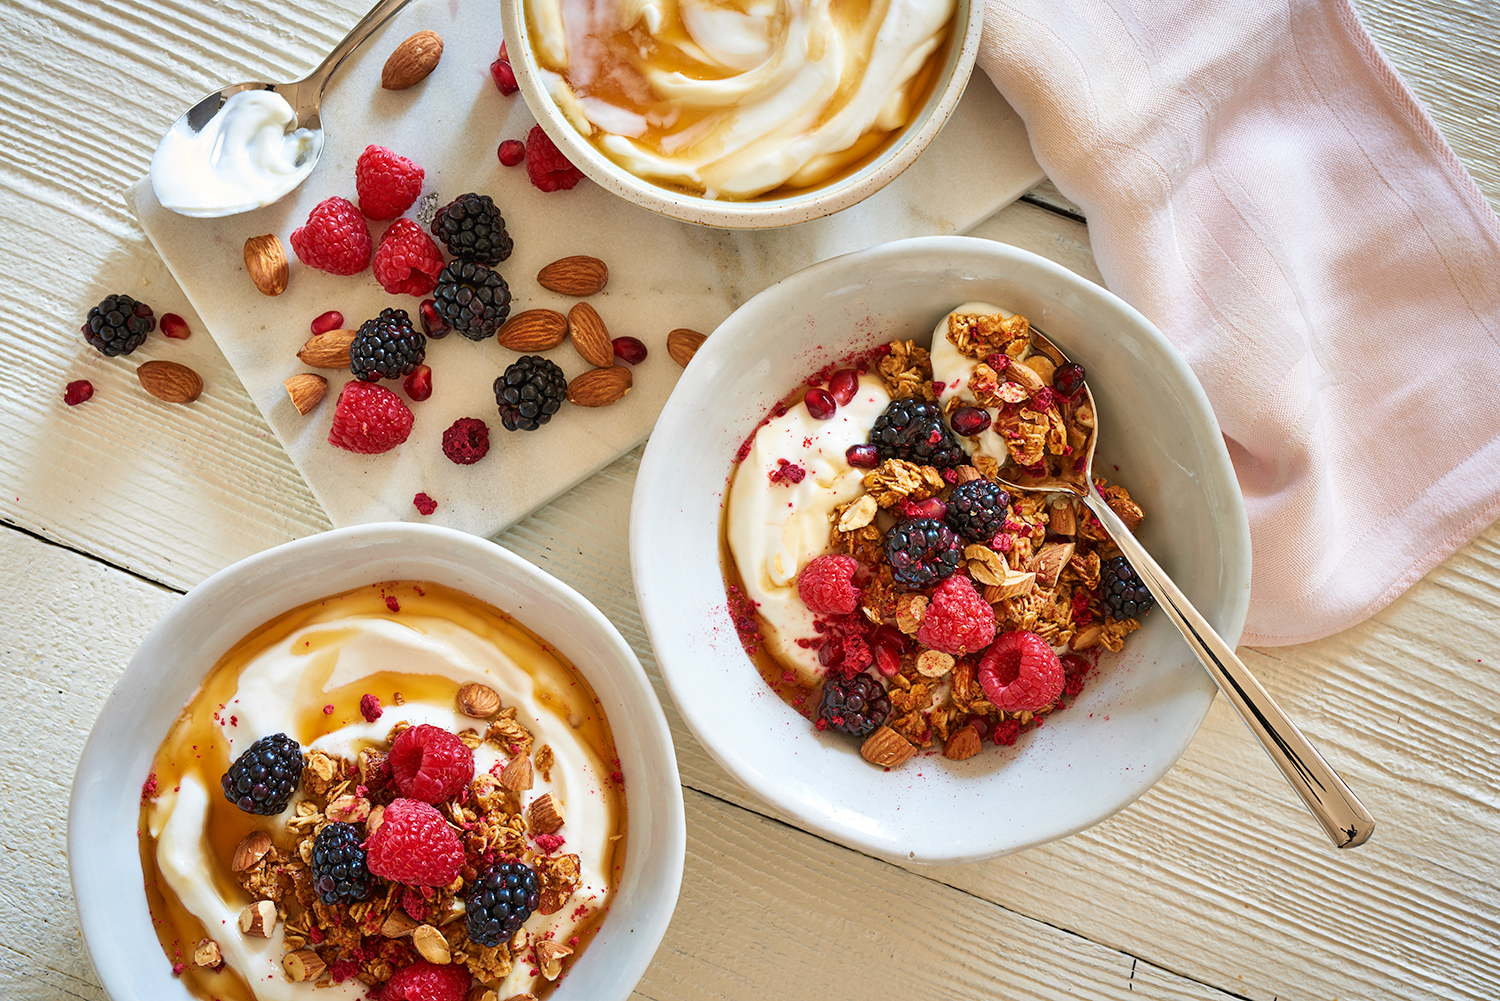 01_Yogurt-Honey-Granola-Fruit.jpg